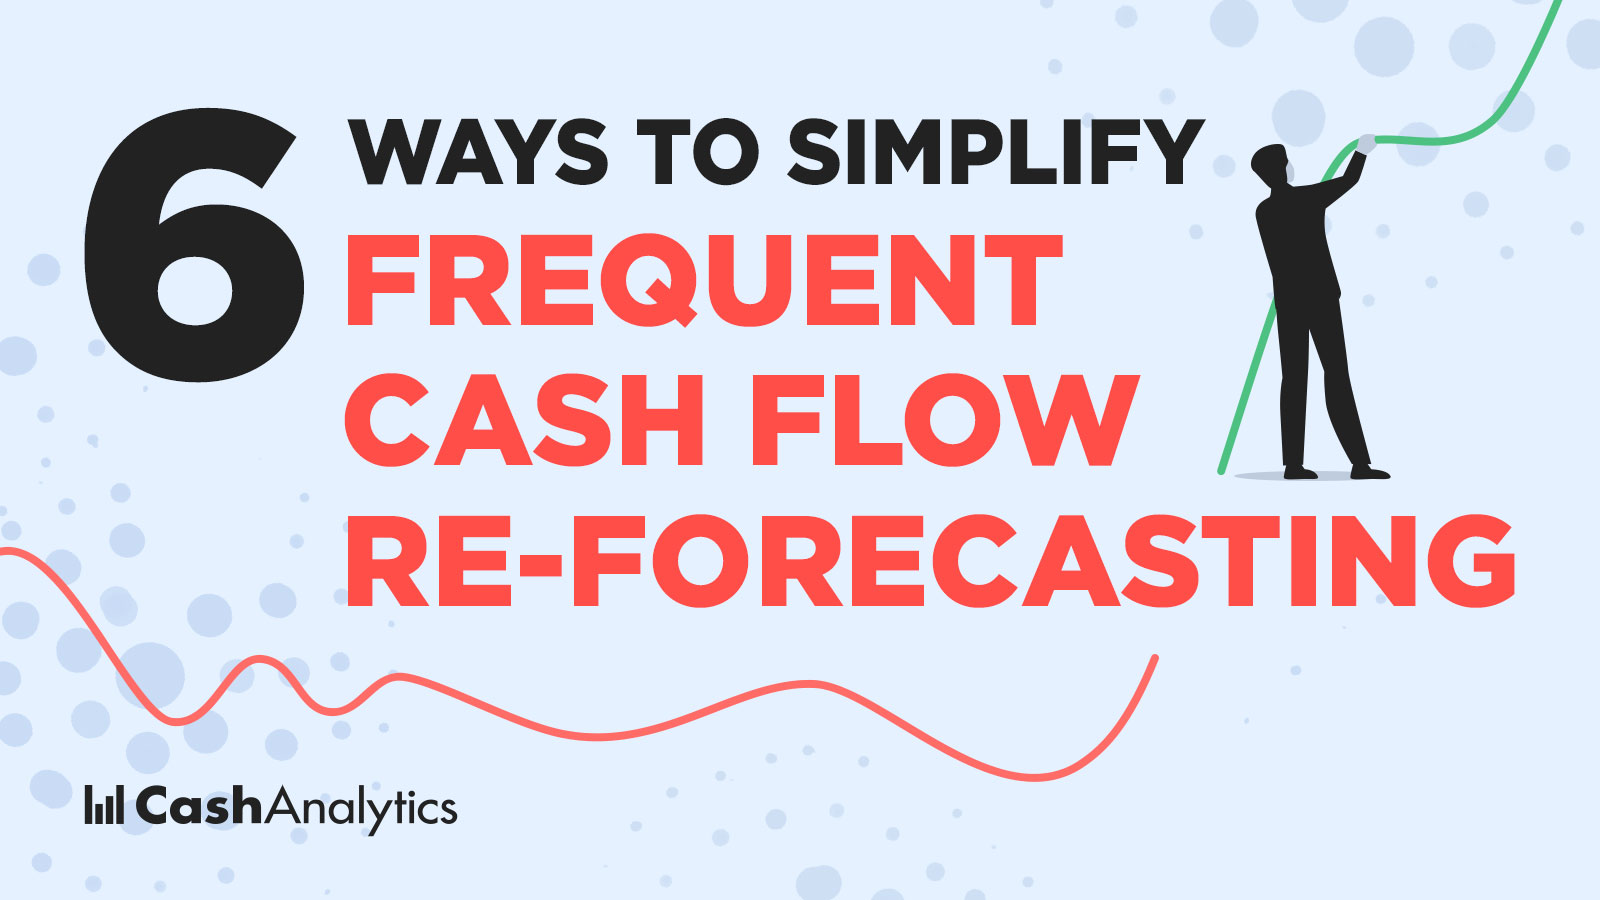 Image for 6 Ways to Simplify Frequent Cash Flow Re-Forecasting